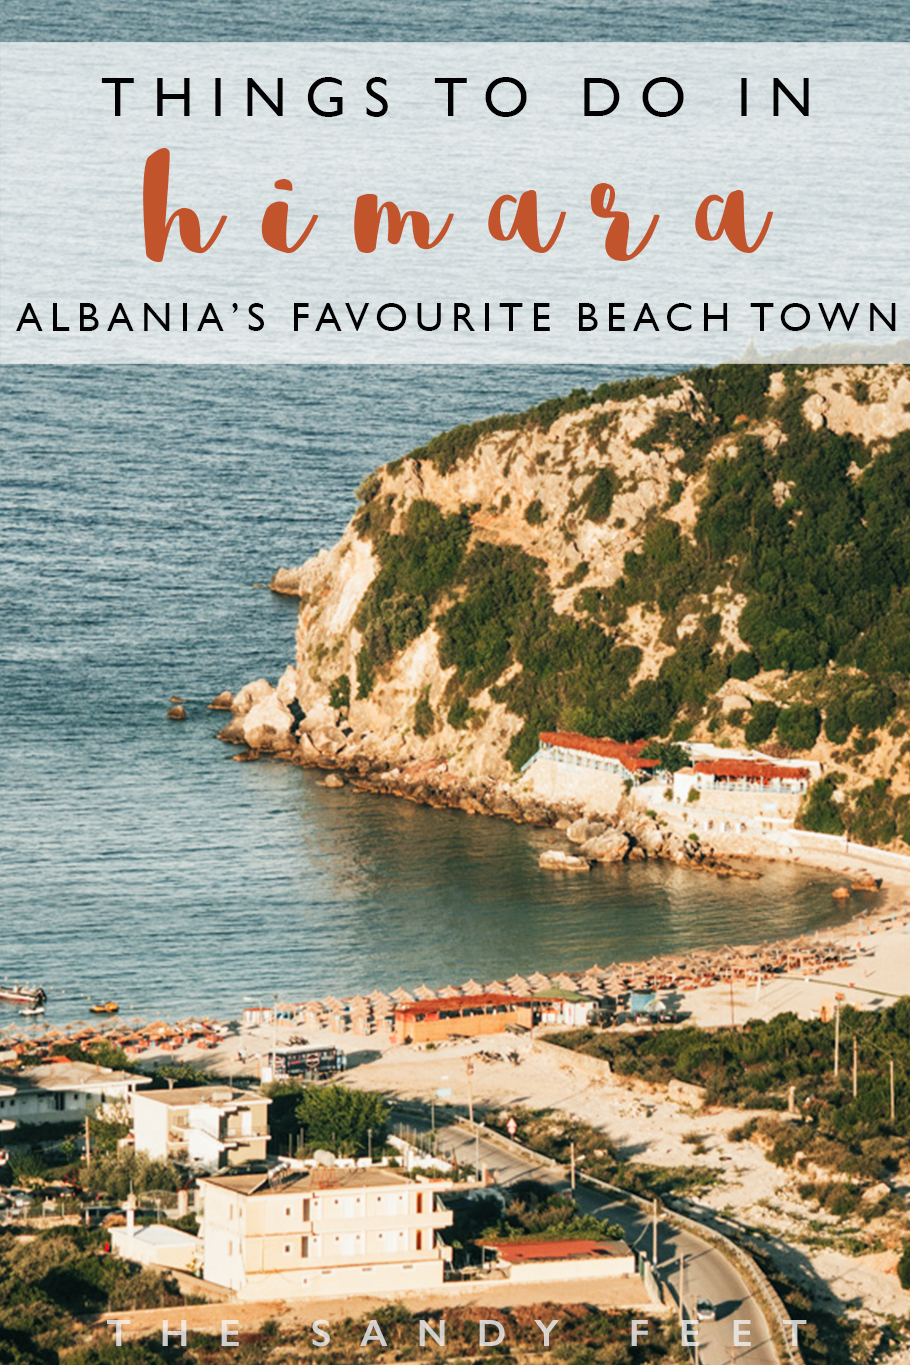 A Short Guide To The Best Things To Do In Himara: Where To Go, Stay And Eat In Albania's Best Beach Town And A Firm Favorite Along The Albanian Riviera.